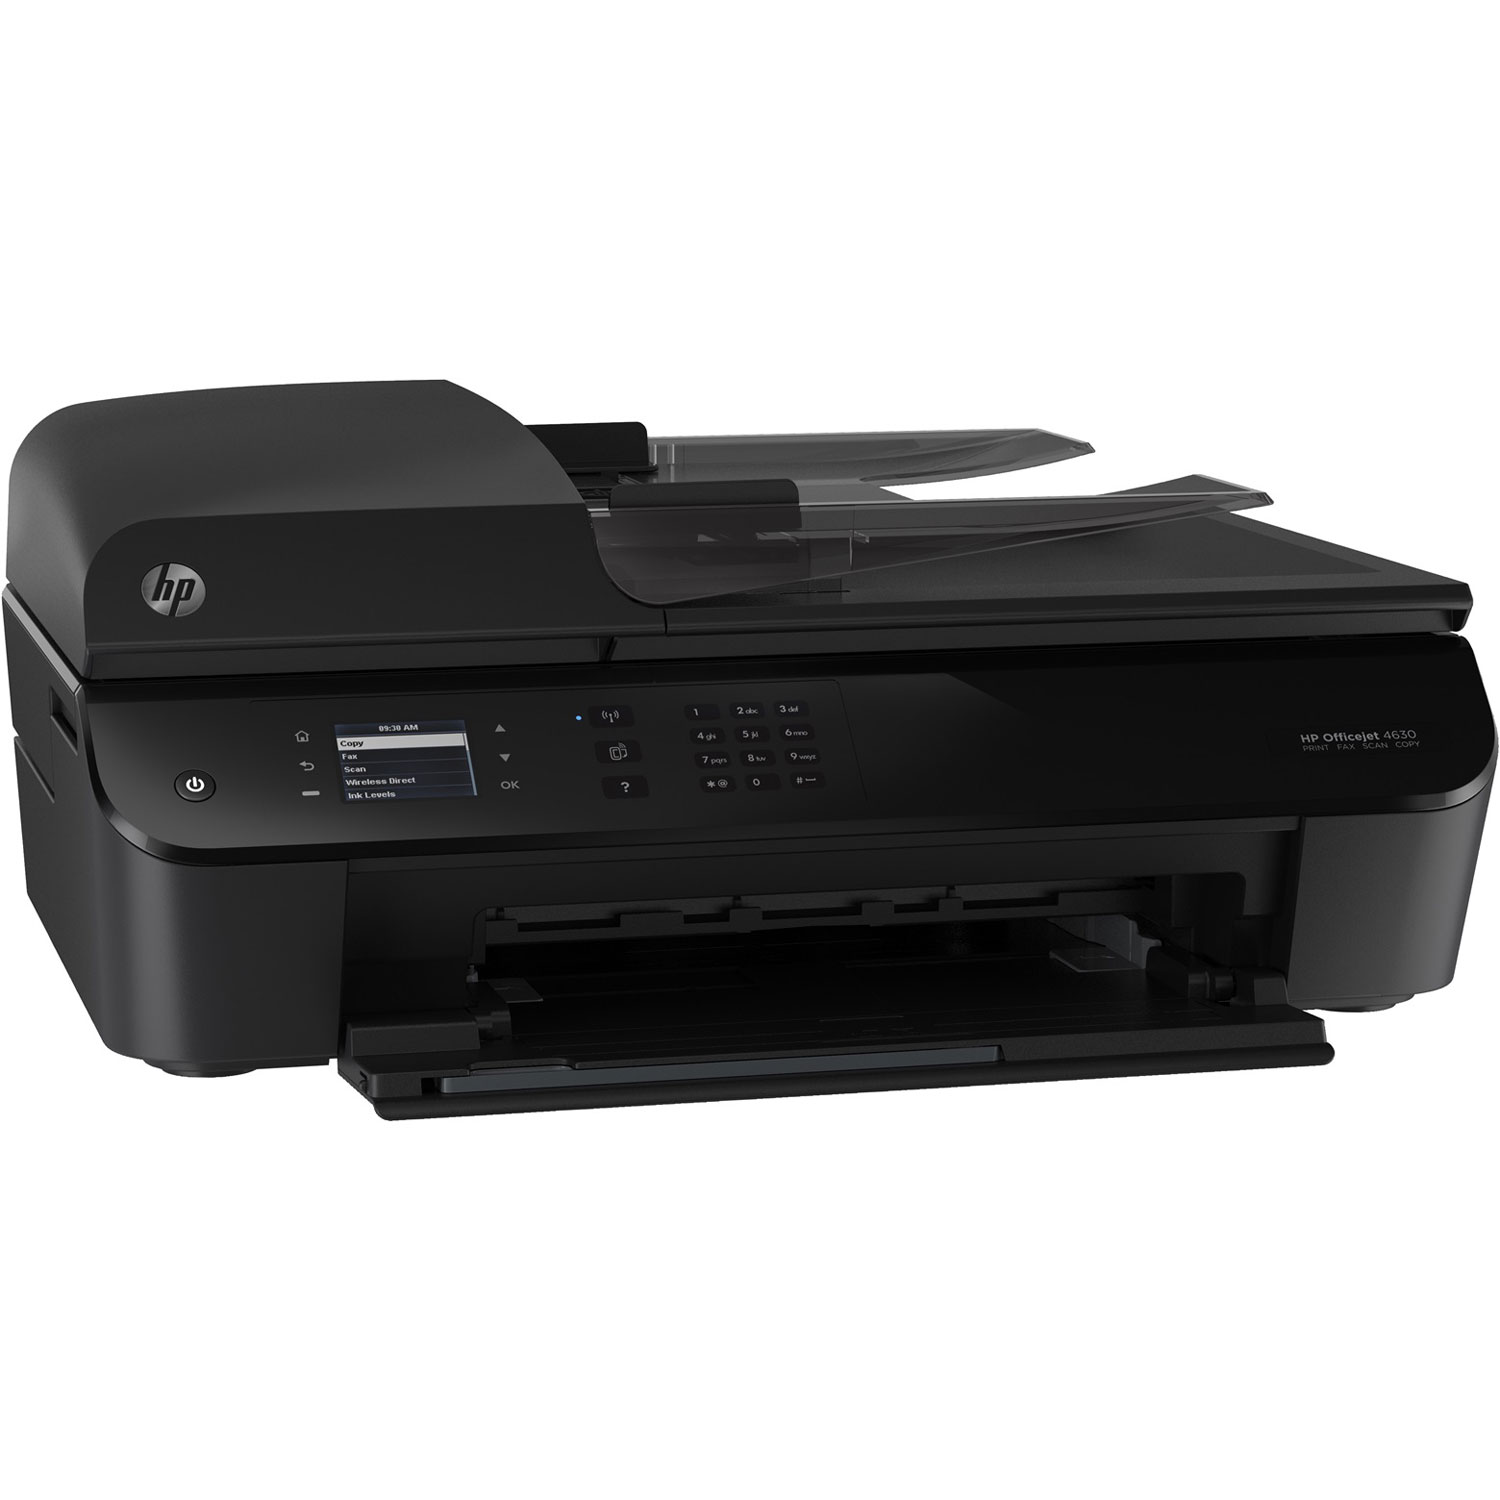 hp officejet 4632 e tout en un imprimante multifonction hp sur ldlc. Black Bedroom Furniture Sets. Home Design Ideas